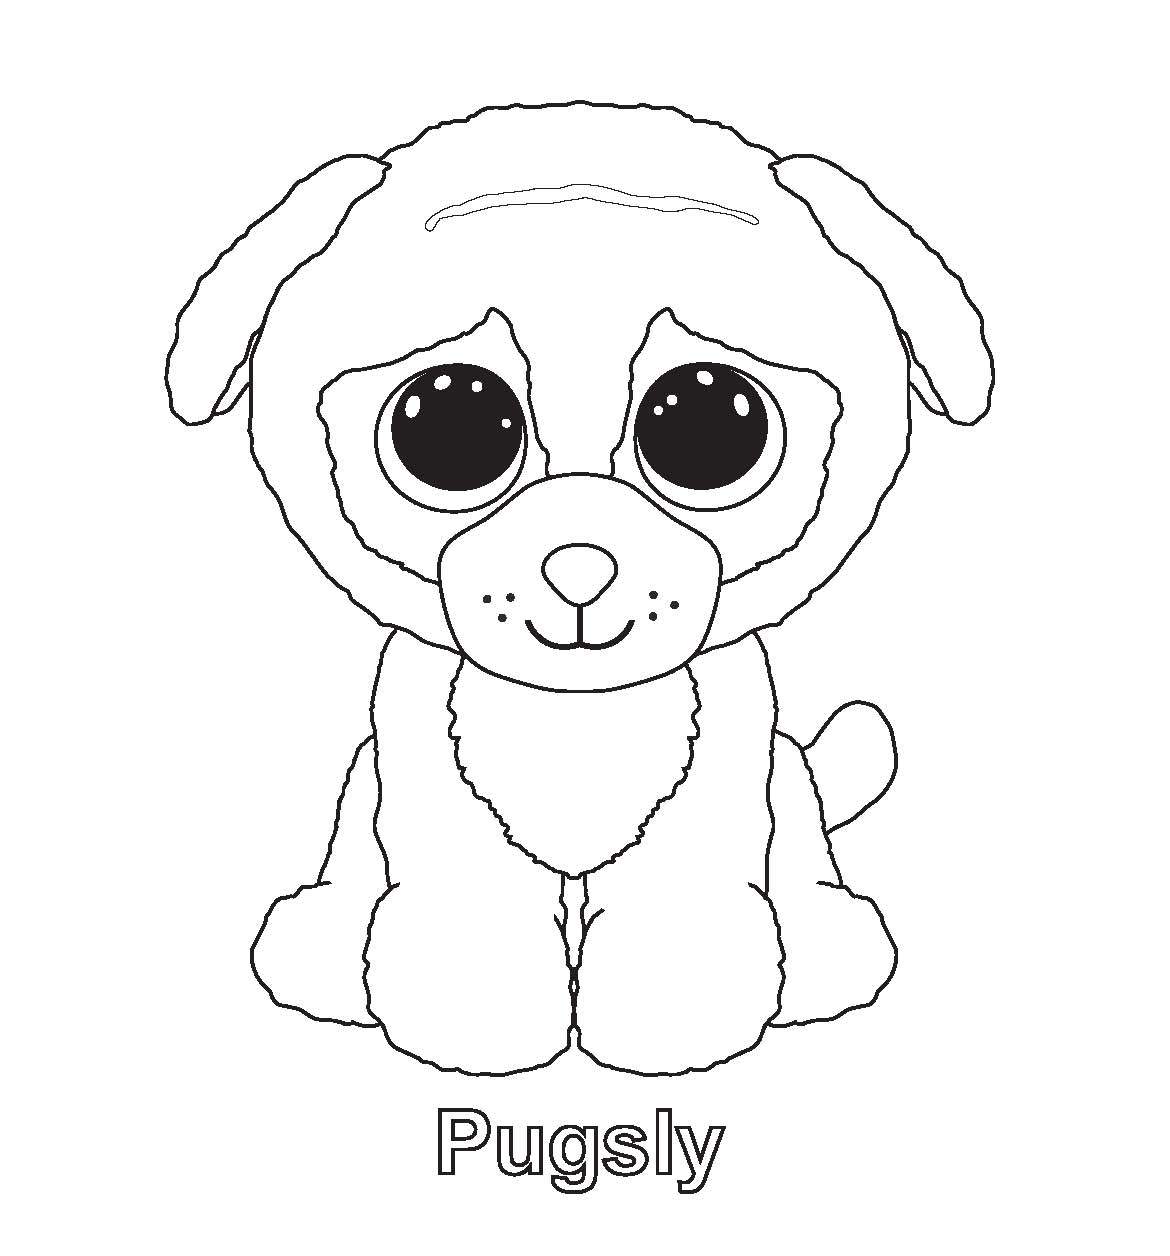 Pugsly Beanie Boo Coloring Pages